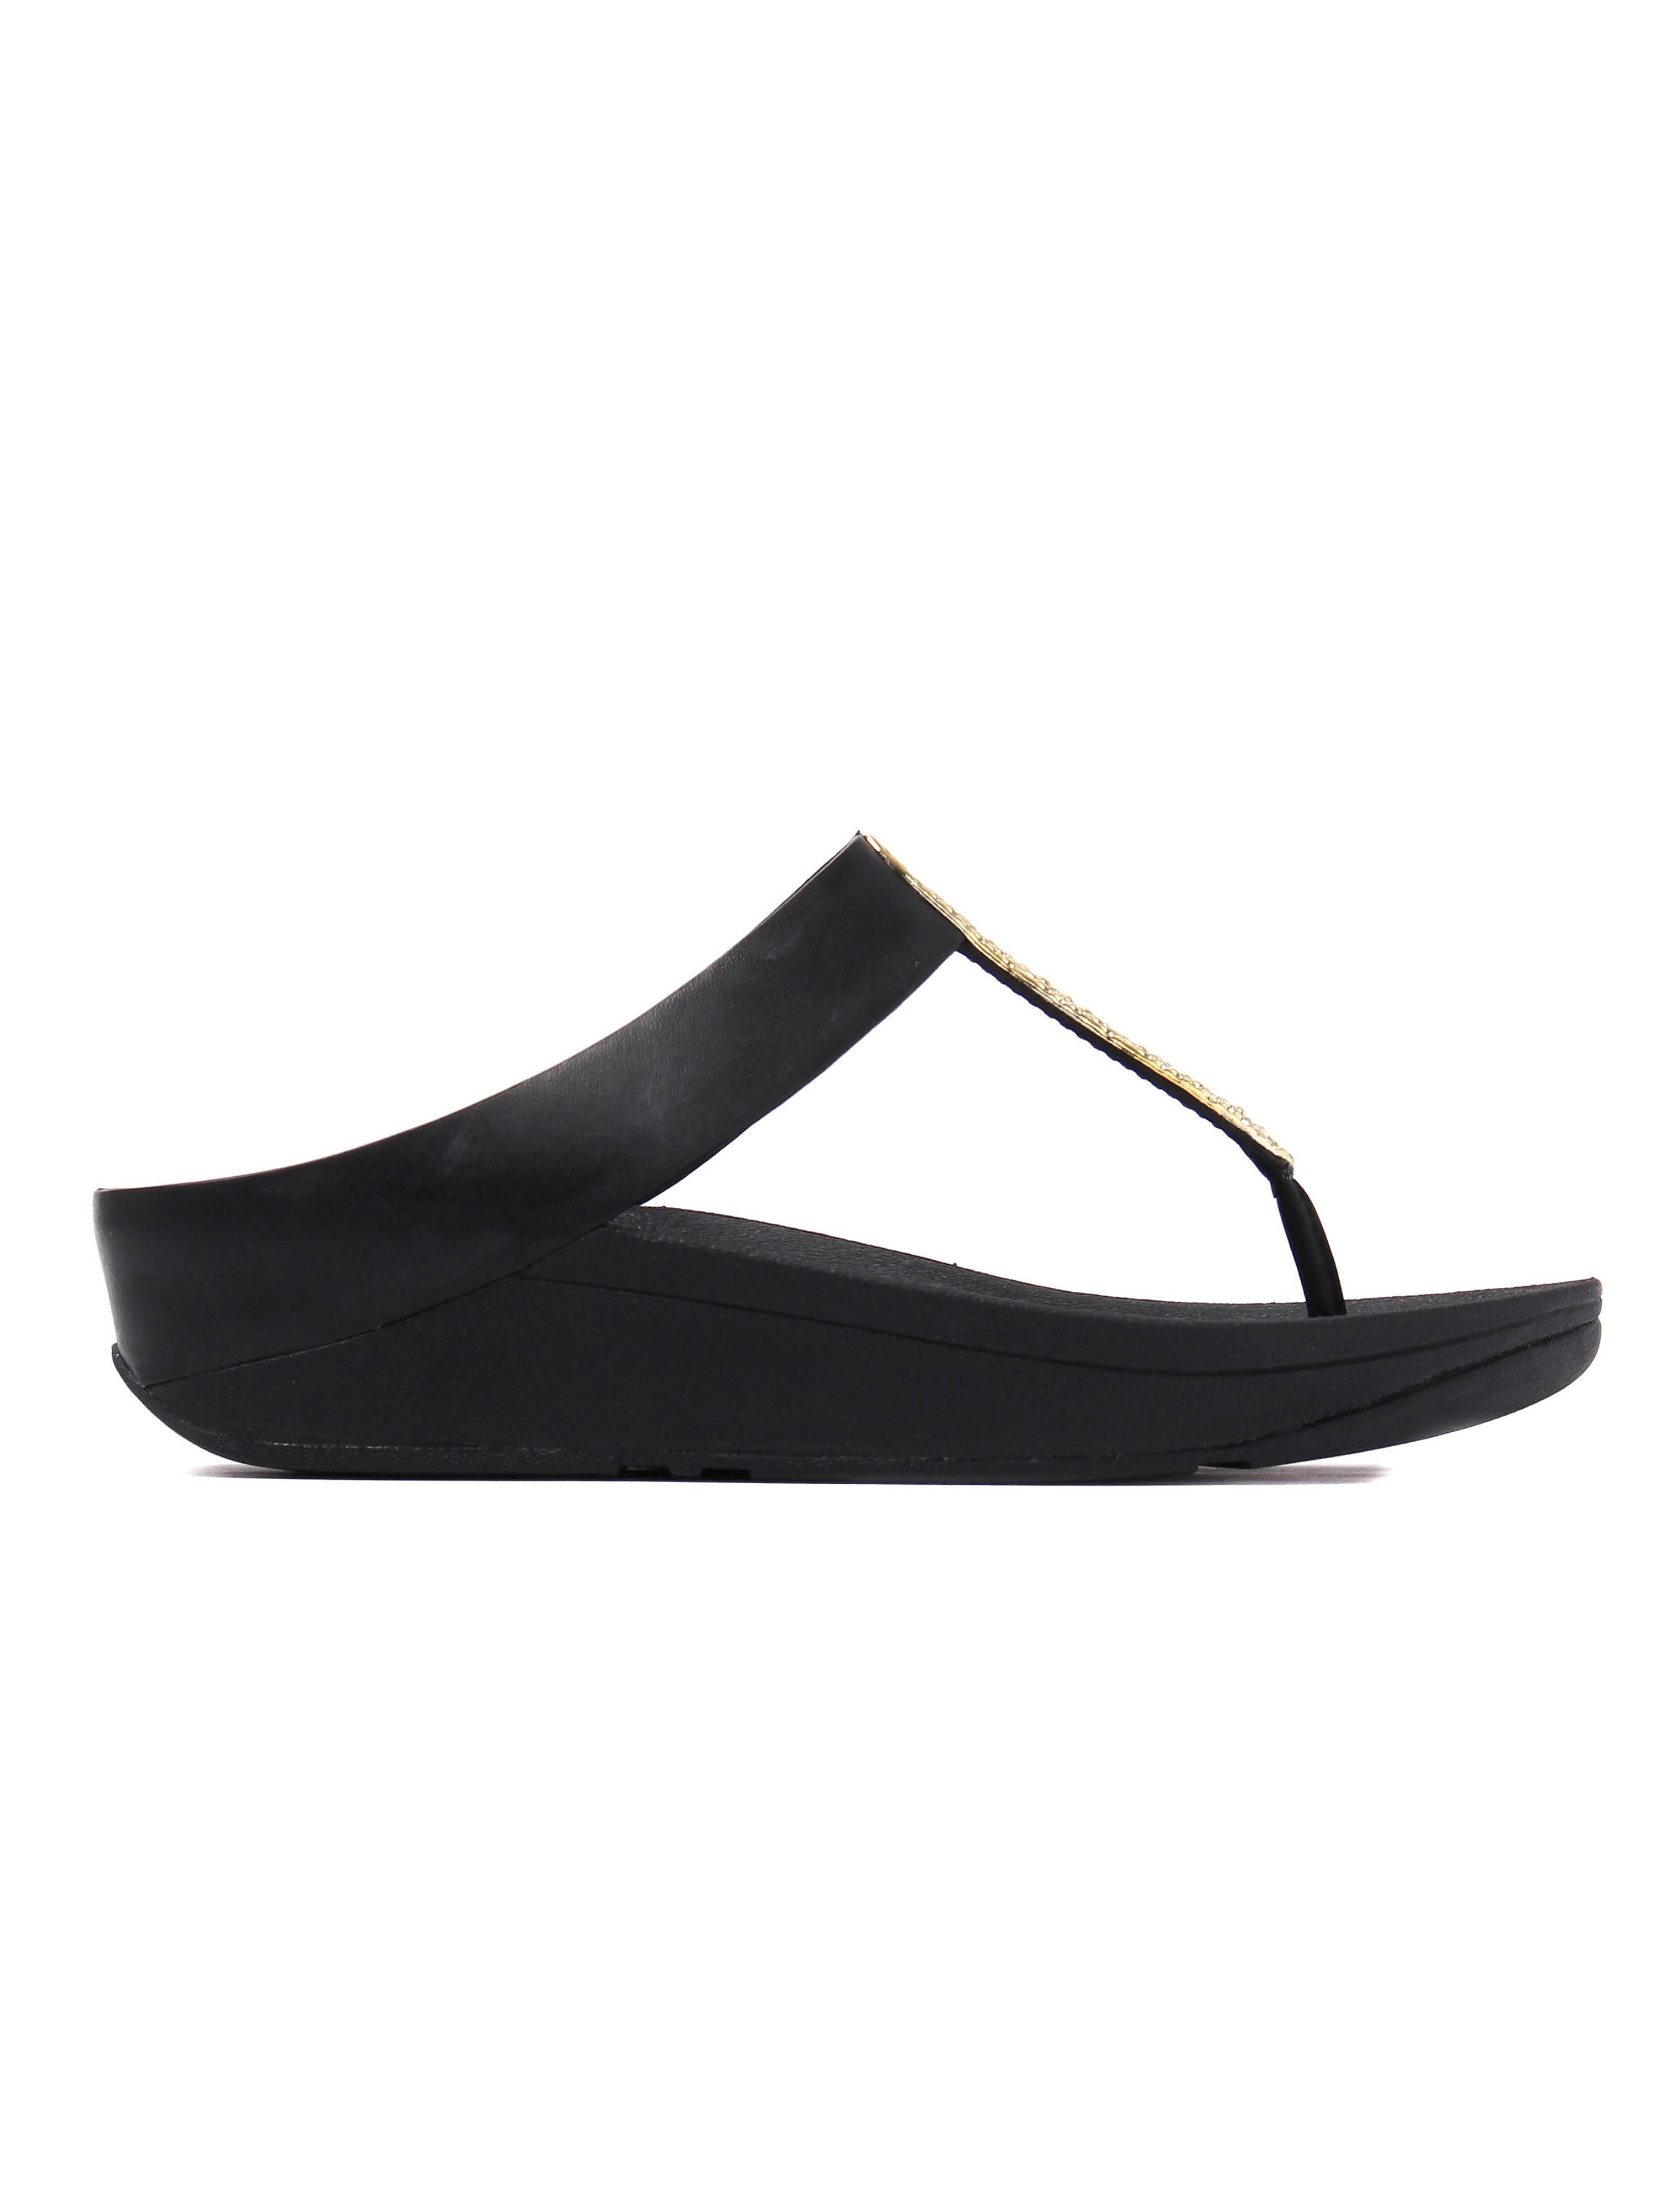 FitFlop Women's Barrio Metal Look Toe Thong Sandals - Black